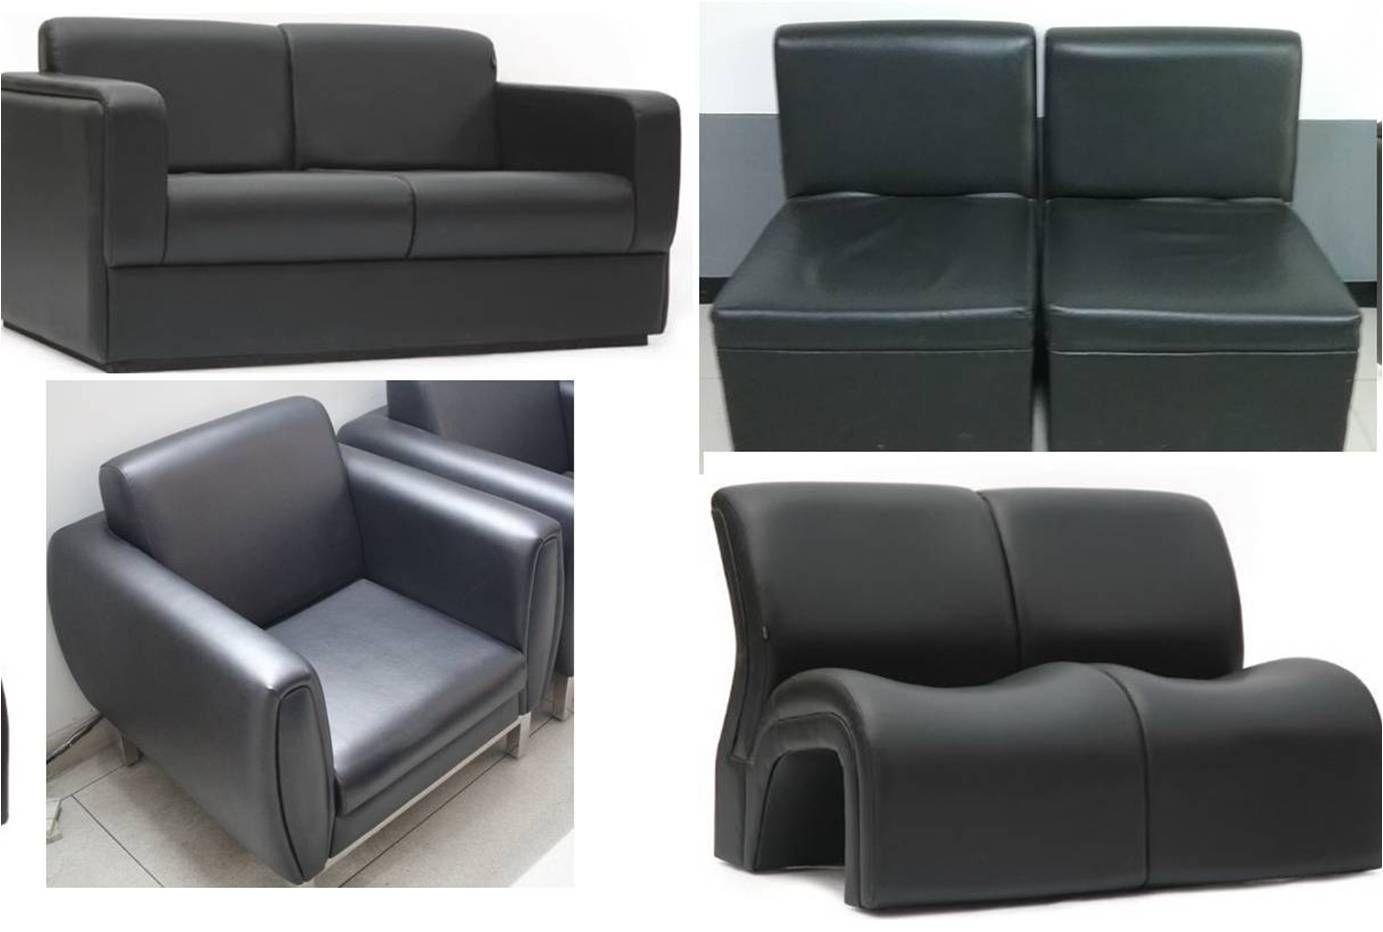 Sofa Set Price In Thanjavur Office Sofa Manufacturer And Vendor Otobi Hatil